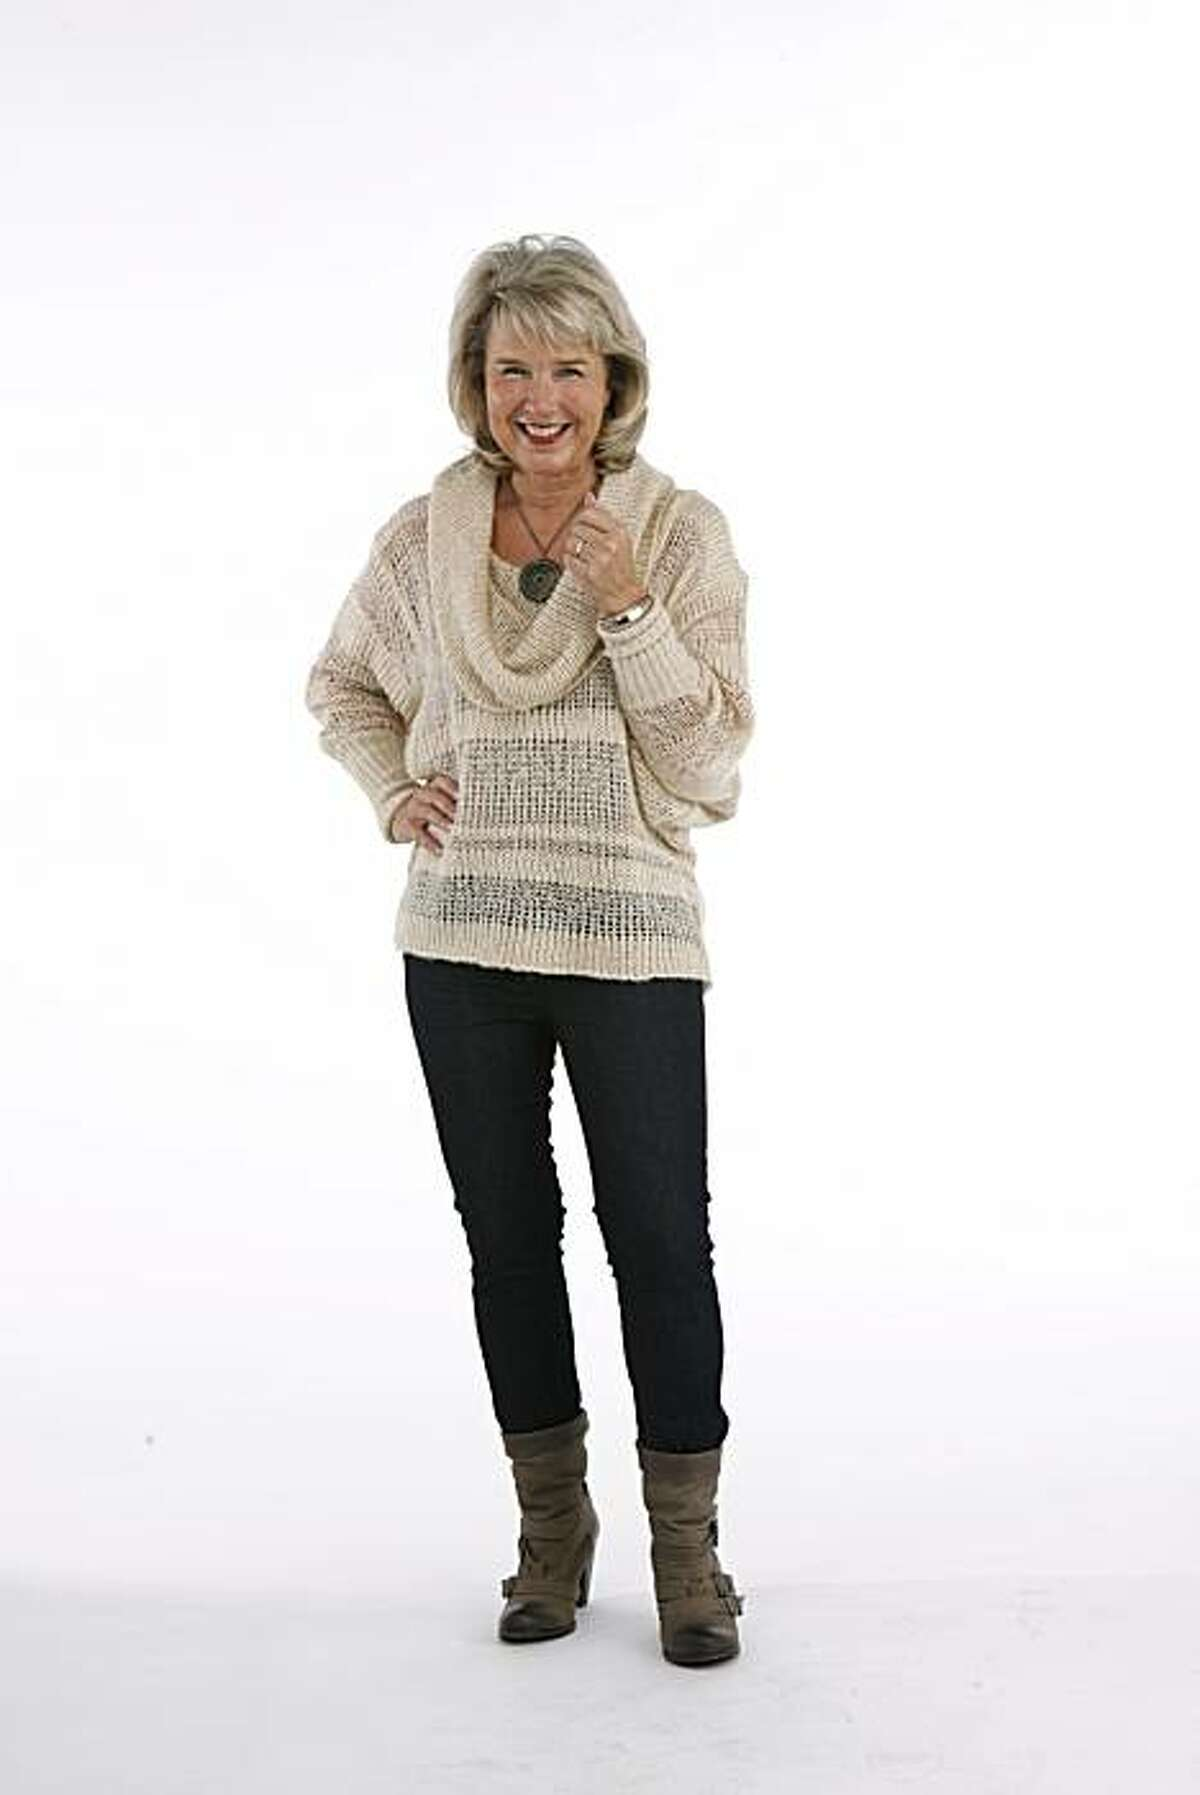 Diane Haydon is the owner of the home furnishings outlet store called Trove located in Berkeley, Calif. where the store features floor samples and interior furnishings from name designers. Haydon poses for a portrait in San Francisco on Friday, Oct. 15, 2010.